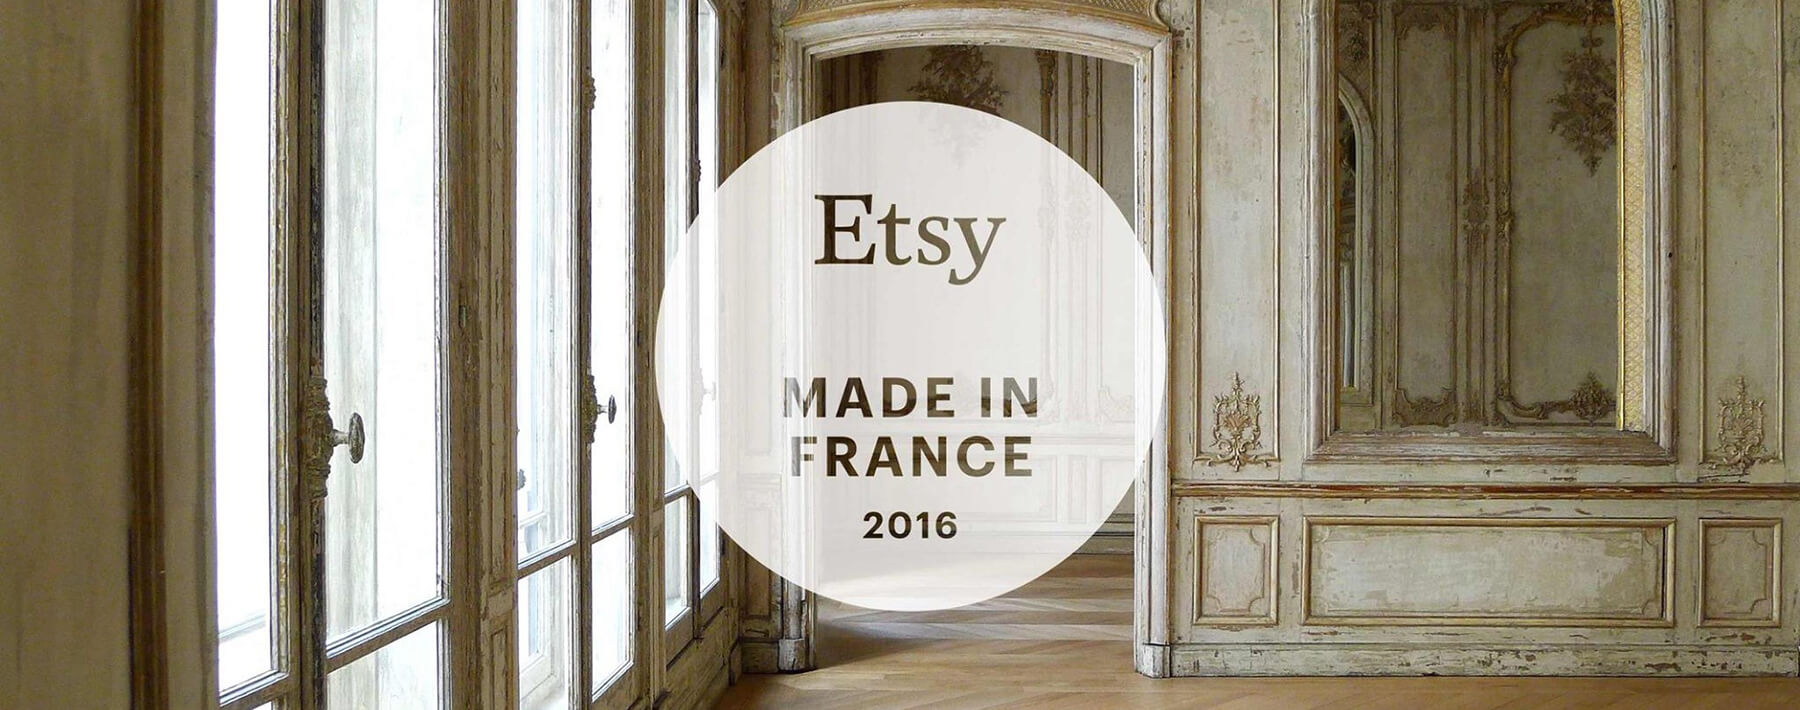 Etsy made in France évènement